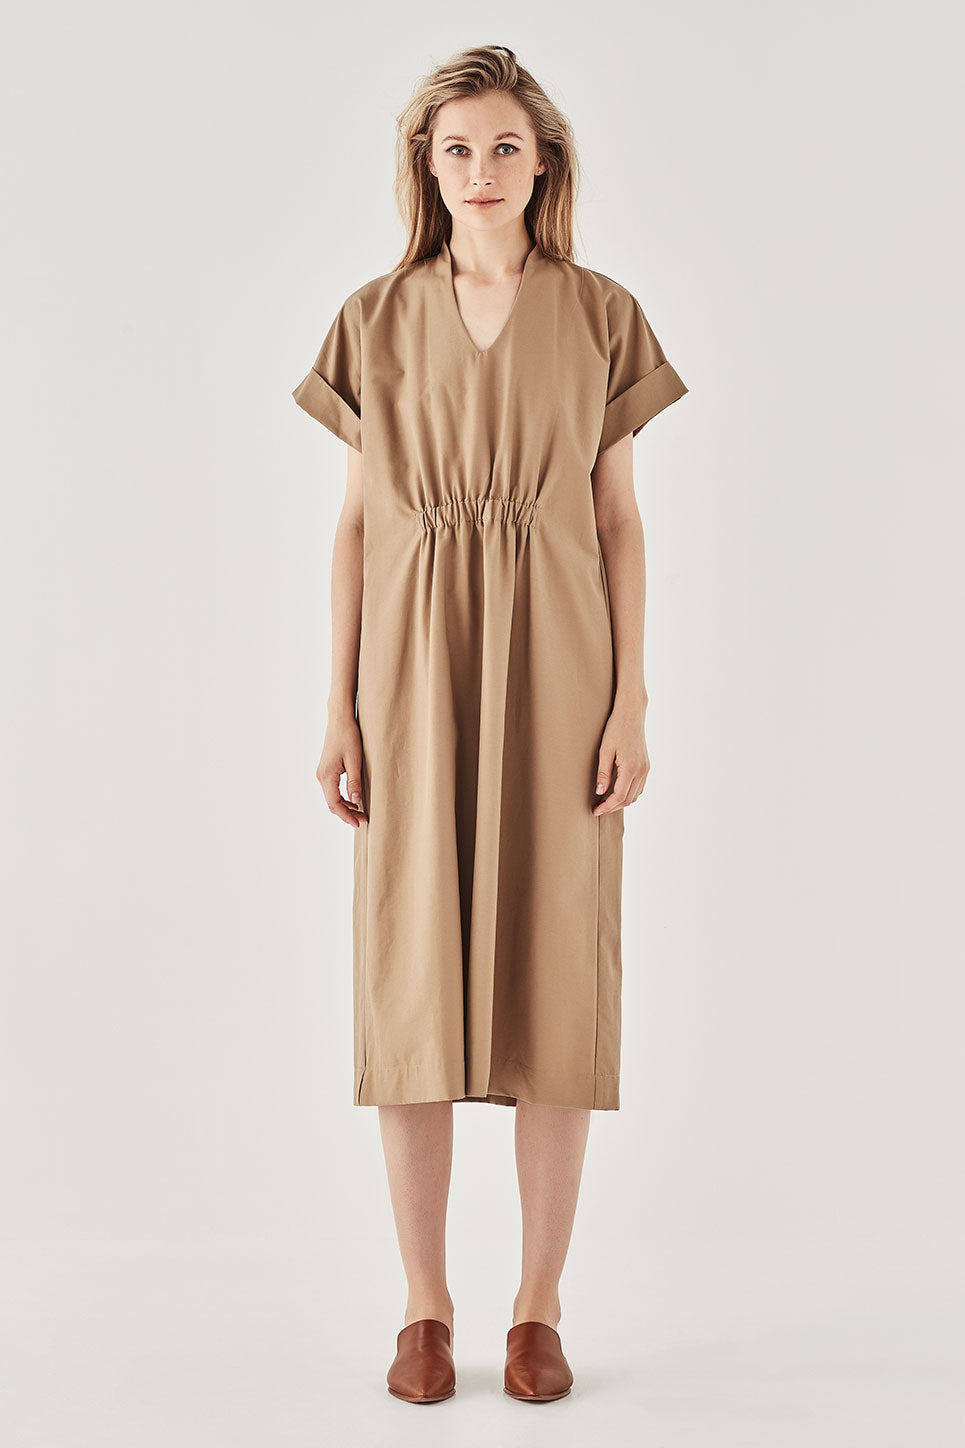 The Cordelia Dress in Tan